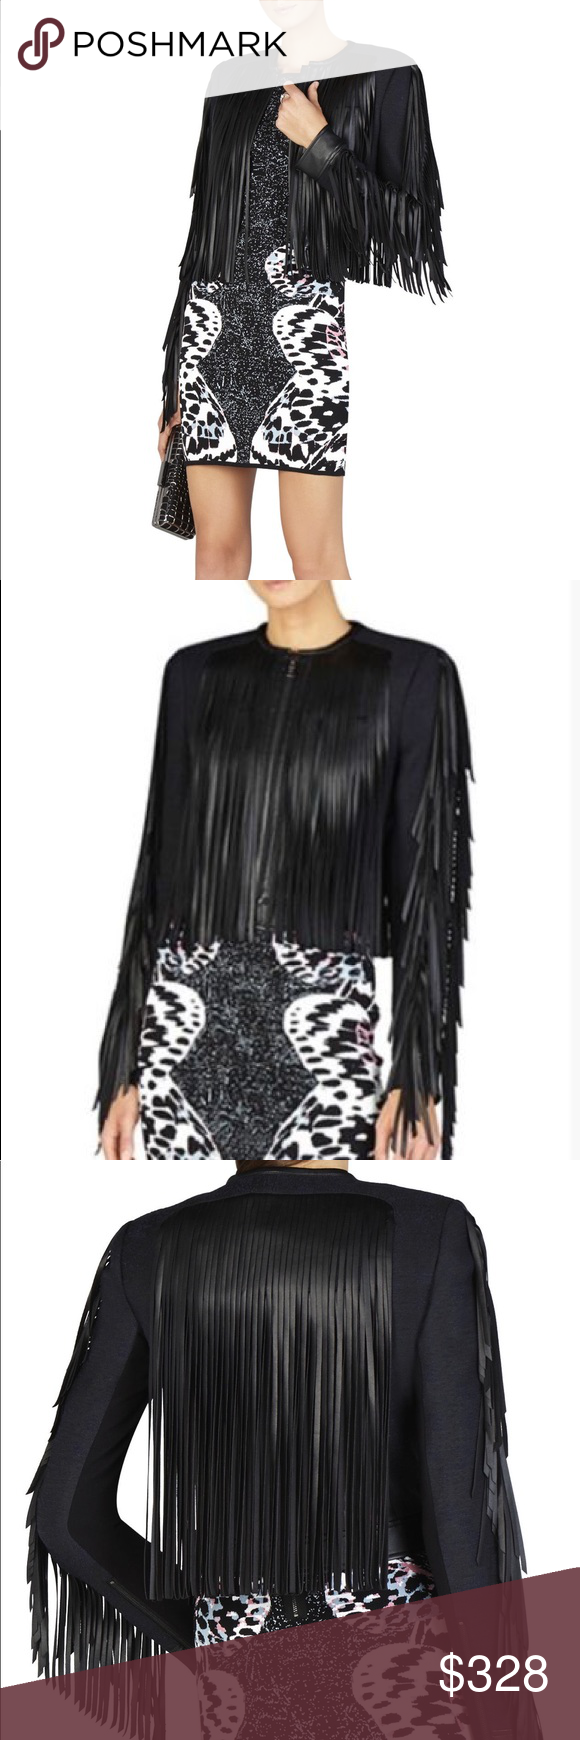 BCBGMAXAZRIA Farrell fringe trim jacket Statement making jacket with alluring fringe movement. Round neck, front zipper closure, hits at the waist. Measures approx. 19.5 in. Shoulder to hem. Faux leather detailing, spandex tweed body, polyester lining. Hand wash. BCBGMaxAzria Jackets & Coats Blazers